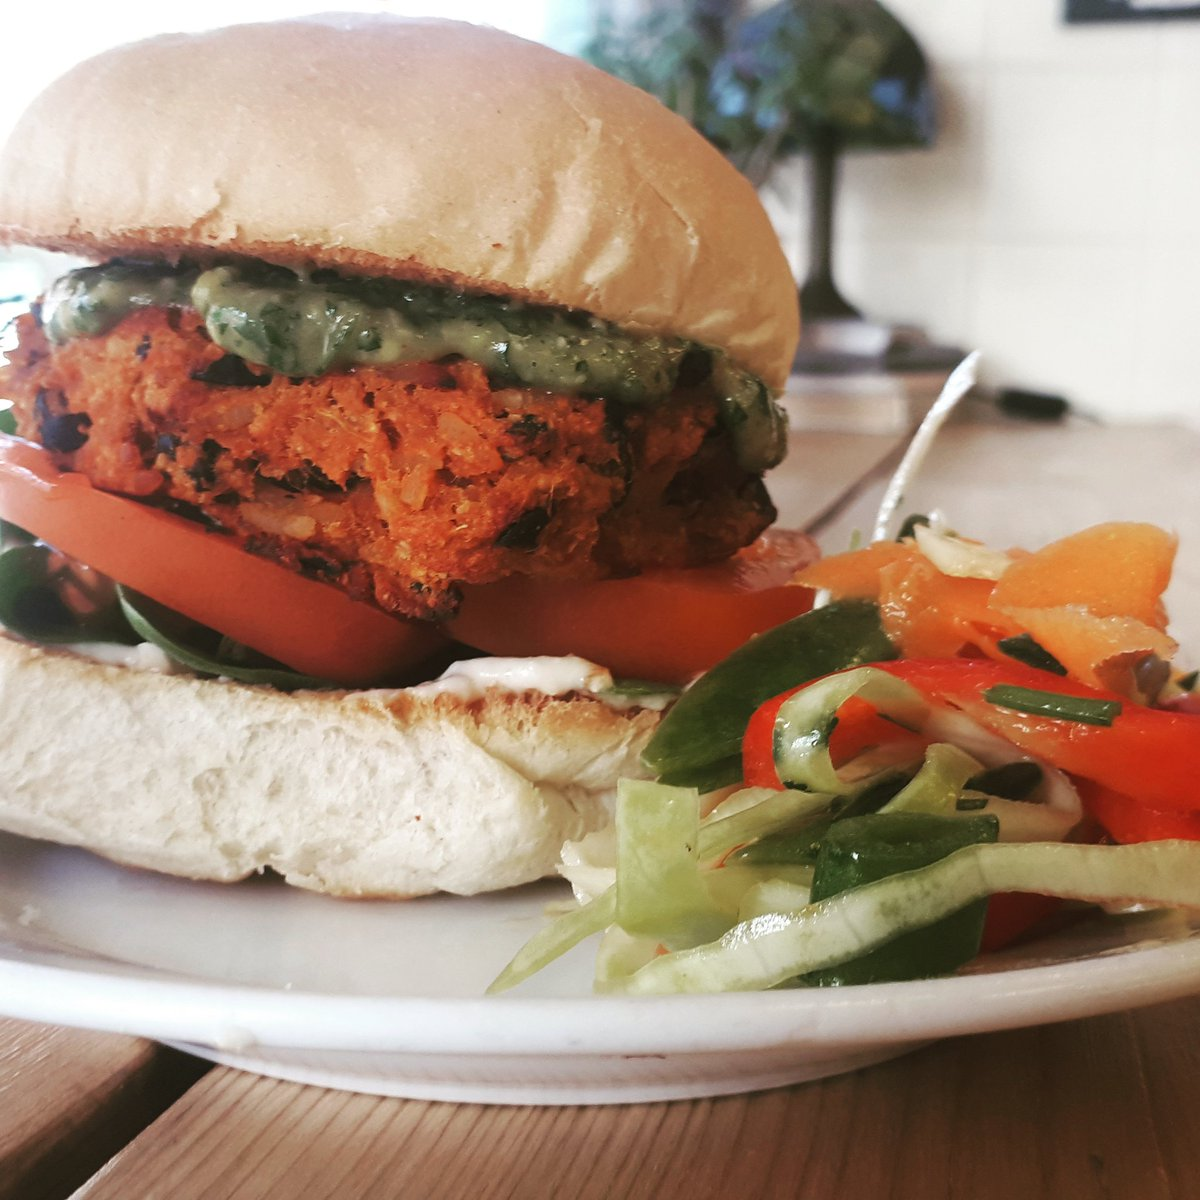 It's BURGER TIME!   Today's special is spiced sweet potato & black bean burger, with avocado & coriander sauce, fresh tomato, and spinach - served with zesty lime & jalapeno 'slaw. Totally #vegan and totally YUM. #veggieburger #veganburger #abbeydaleroad  #getinmybellypic.twitter.com/xYtPWRKf6P